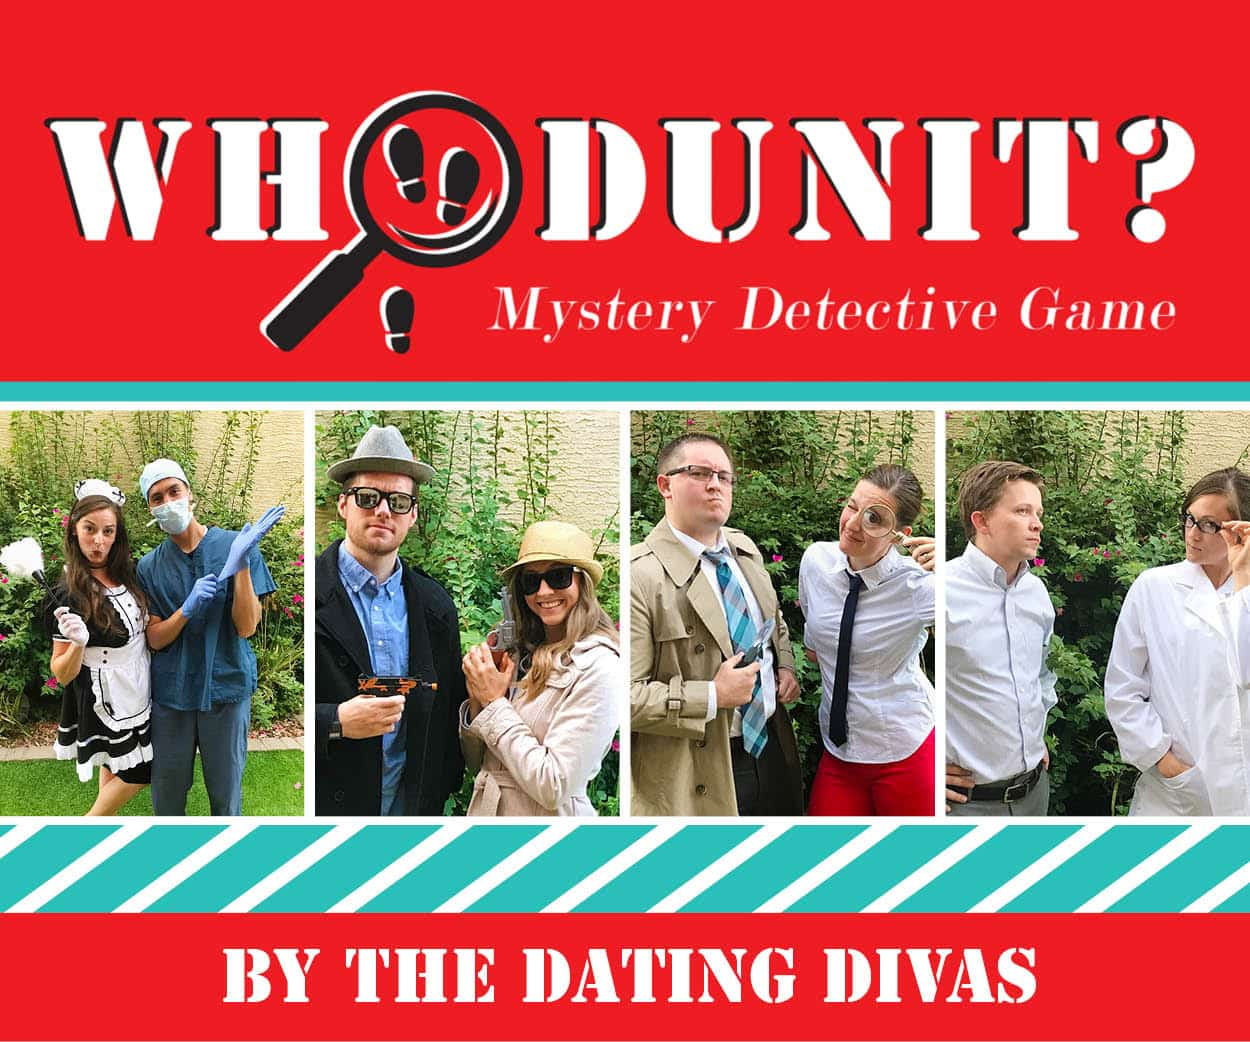 Whodunit Mystery Detective Game Group Date Night by The Dating Divas